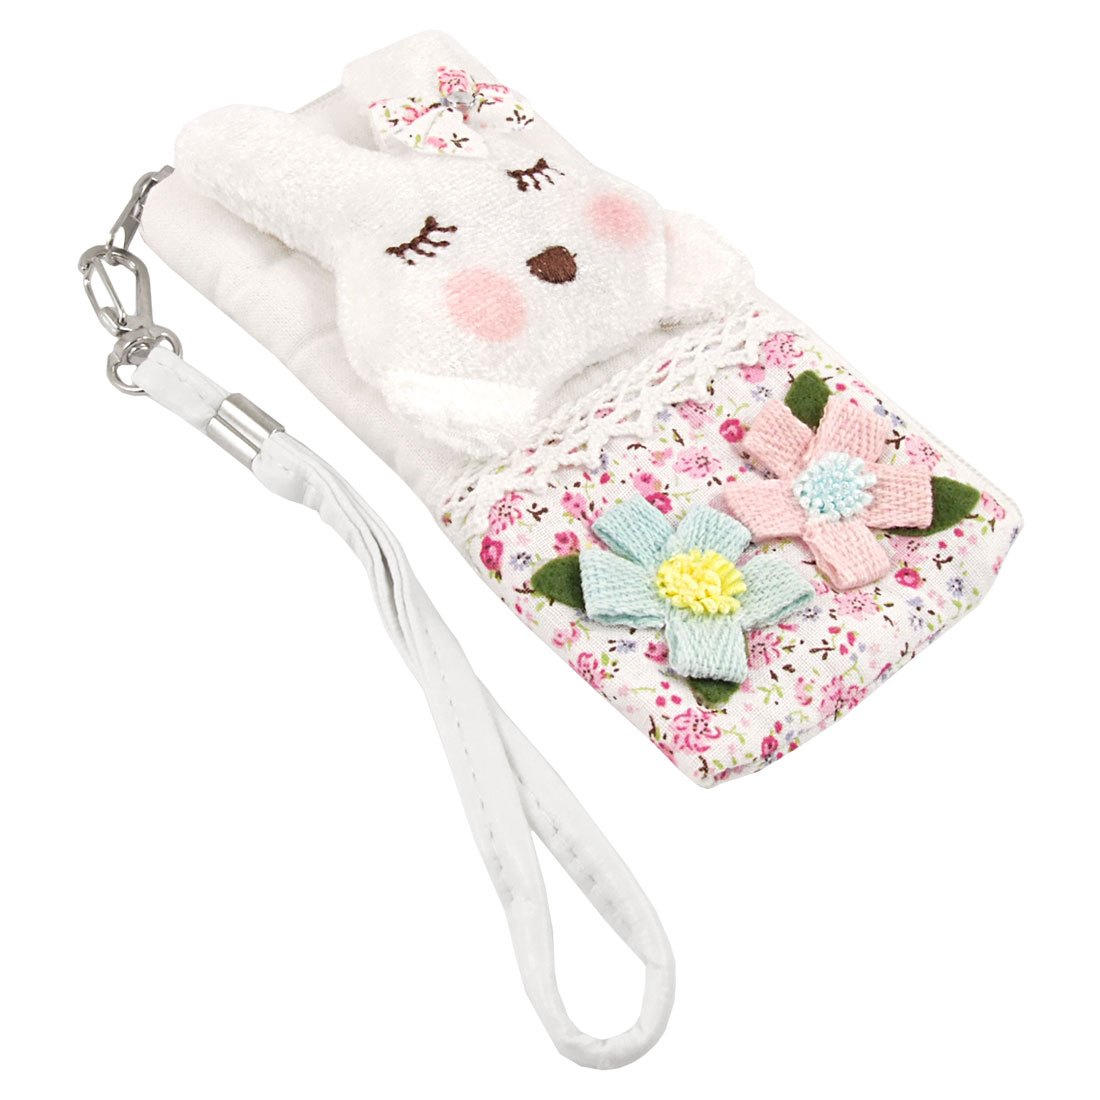 Bowknot Accent Rabbit Decor Pouch Bag Holder w Strap for iPhone 4 4G 4S